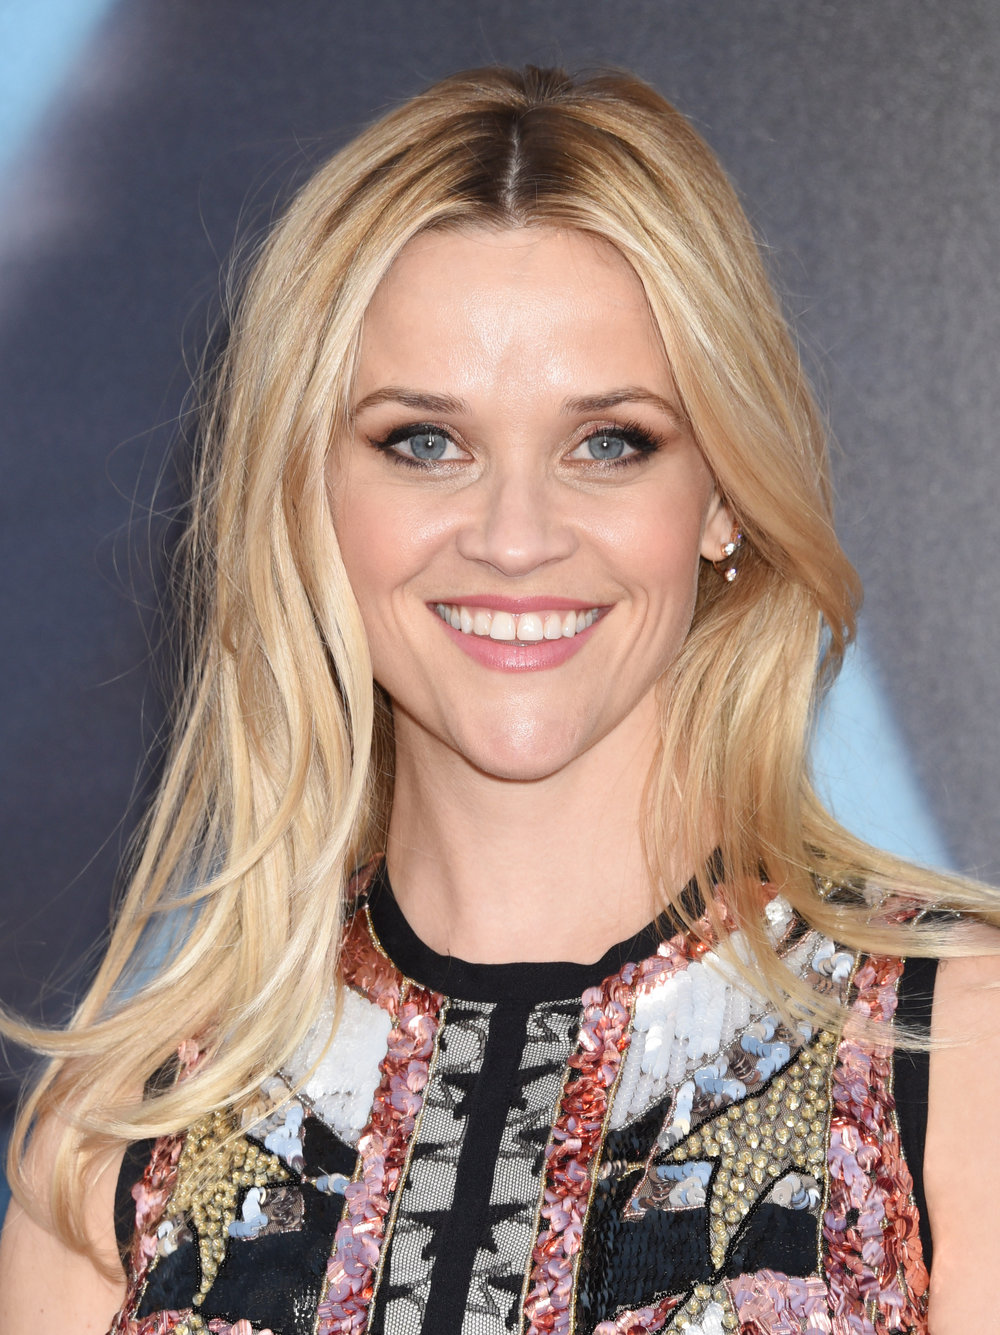 haircuts-heart-faces-reese-witherspoon.jpg